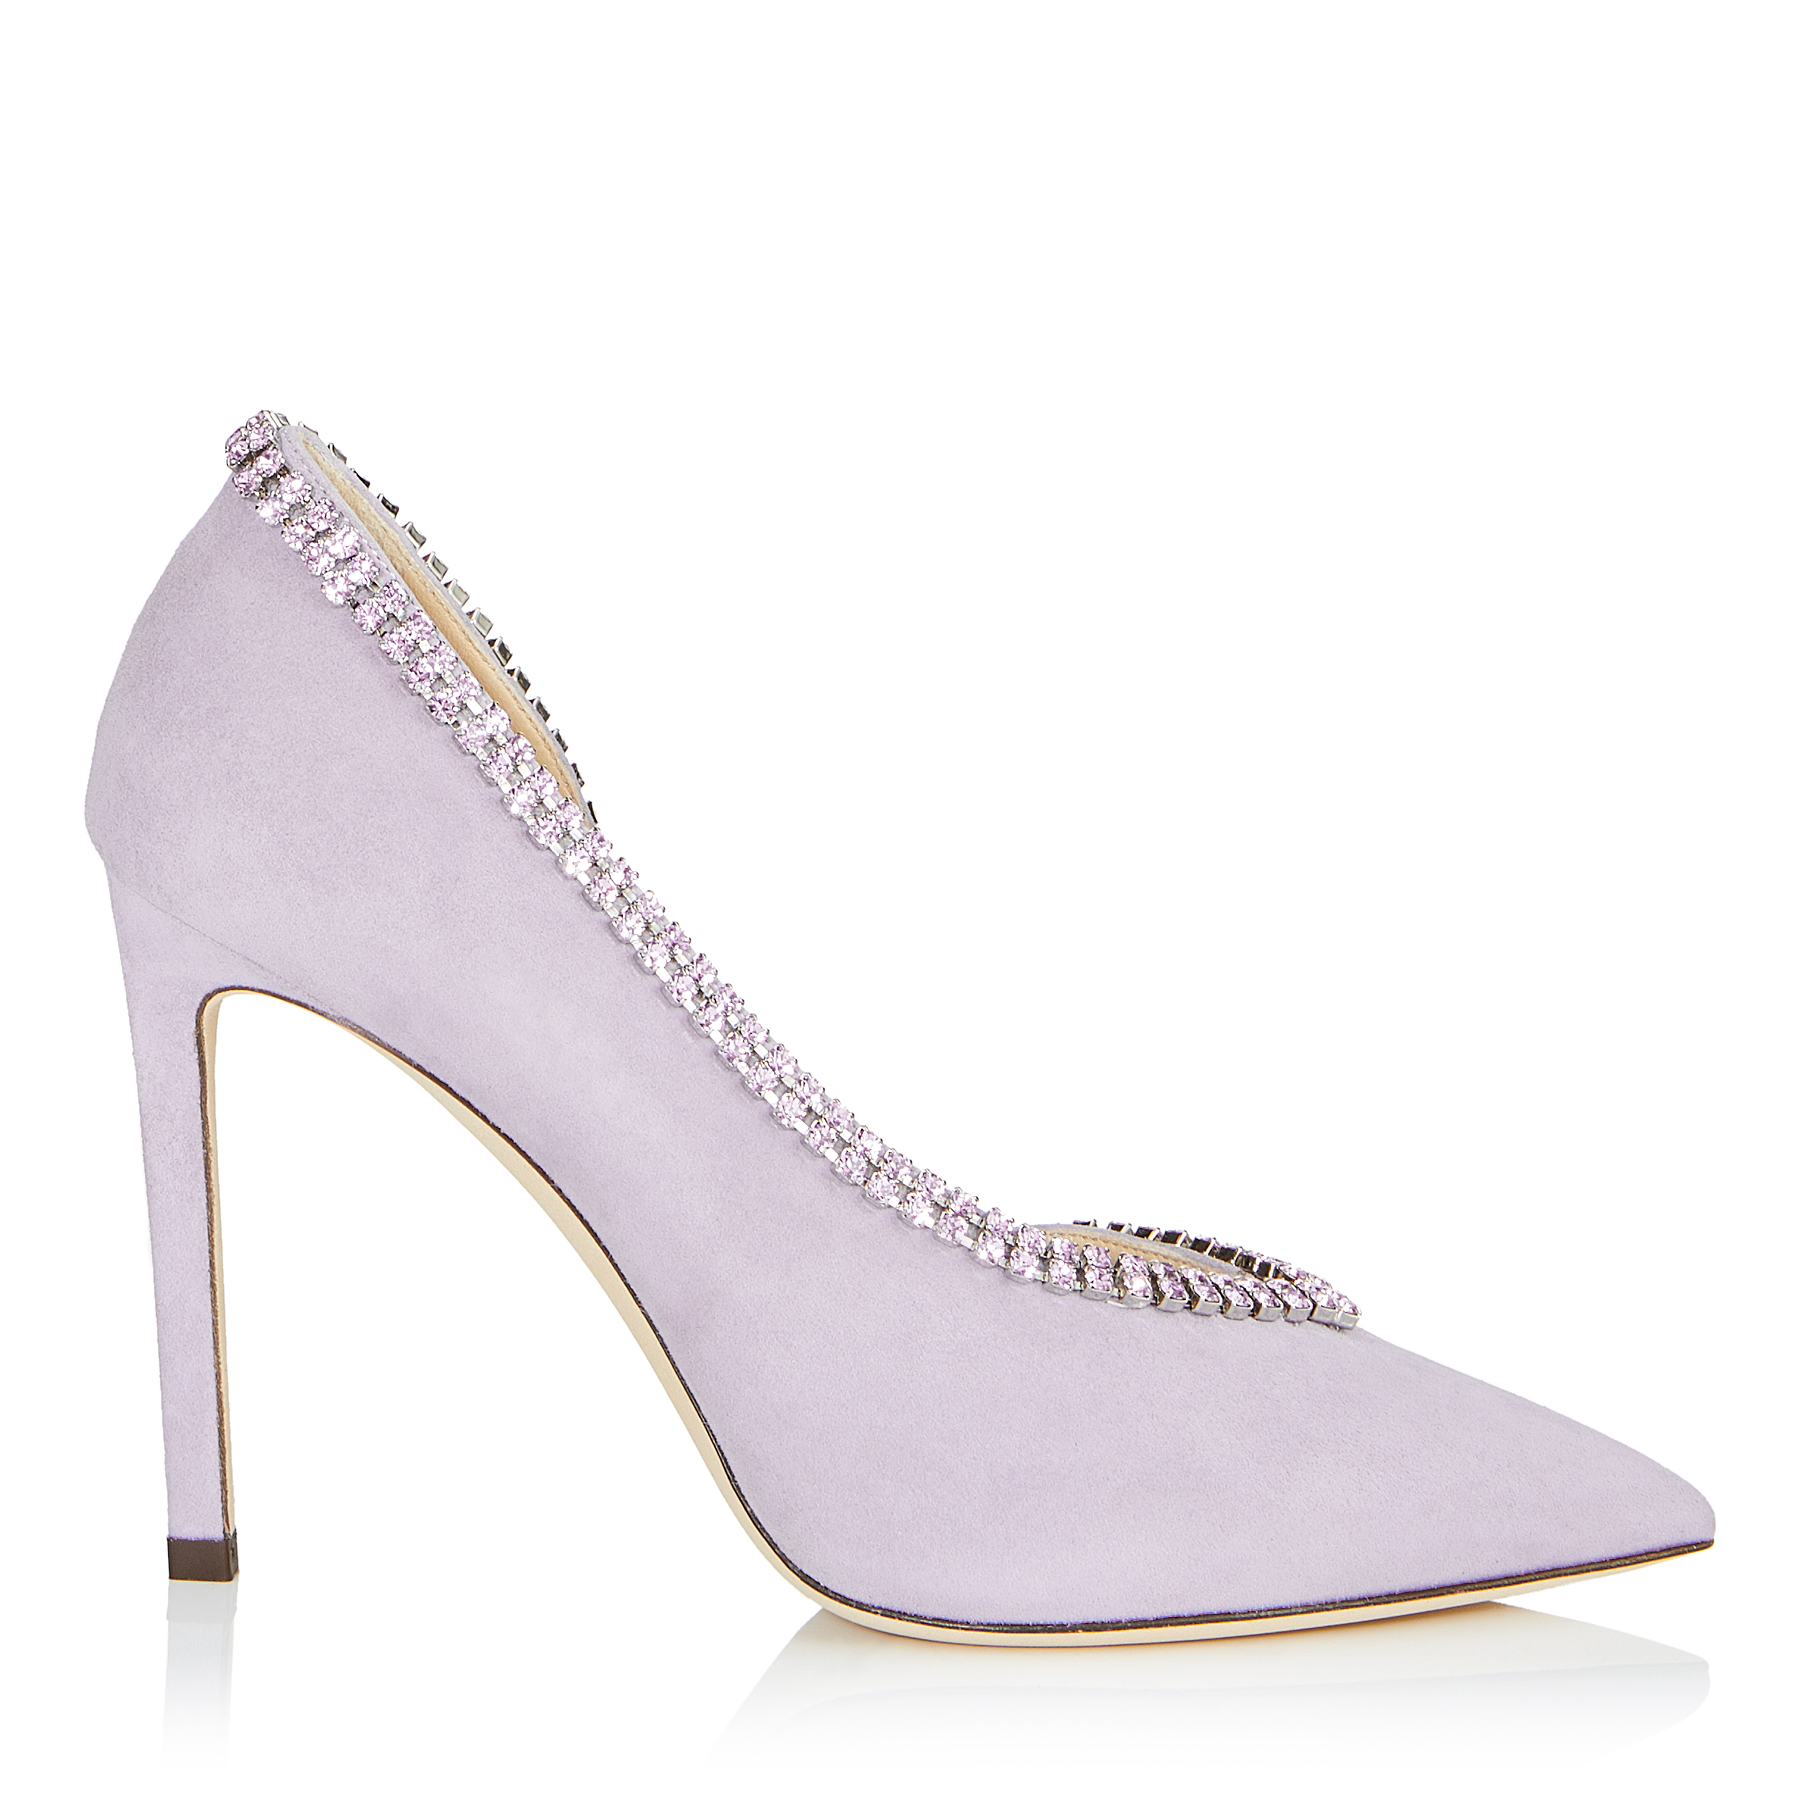 LILIAN 100 Viola Suede Pointy Toe Pumps with Crystal Trim by Jimmy Choo